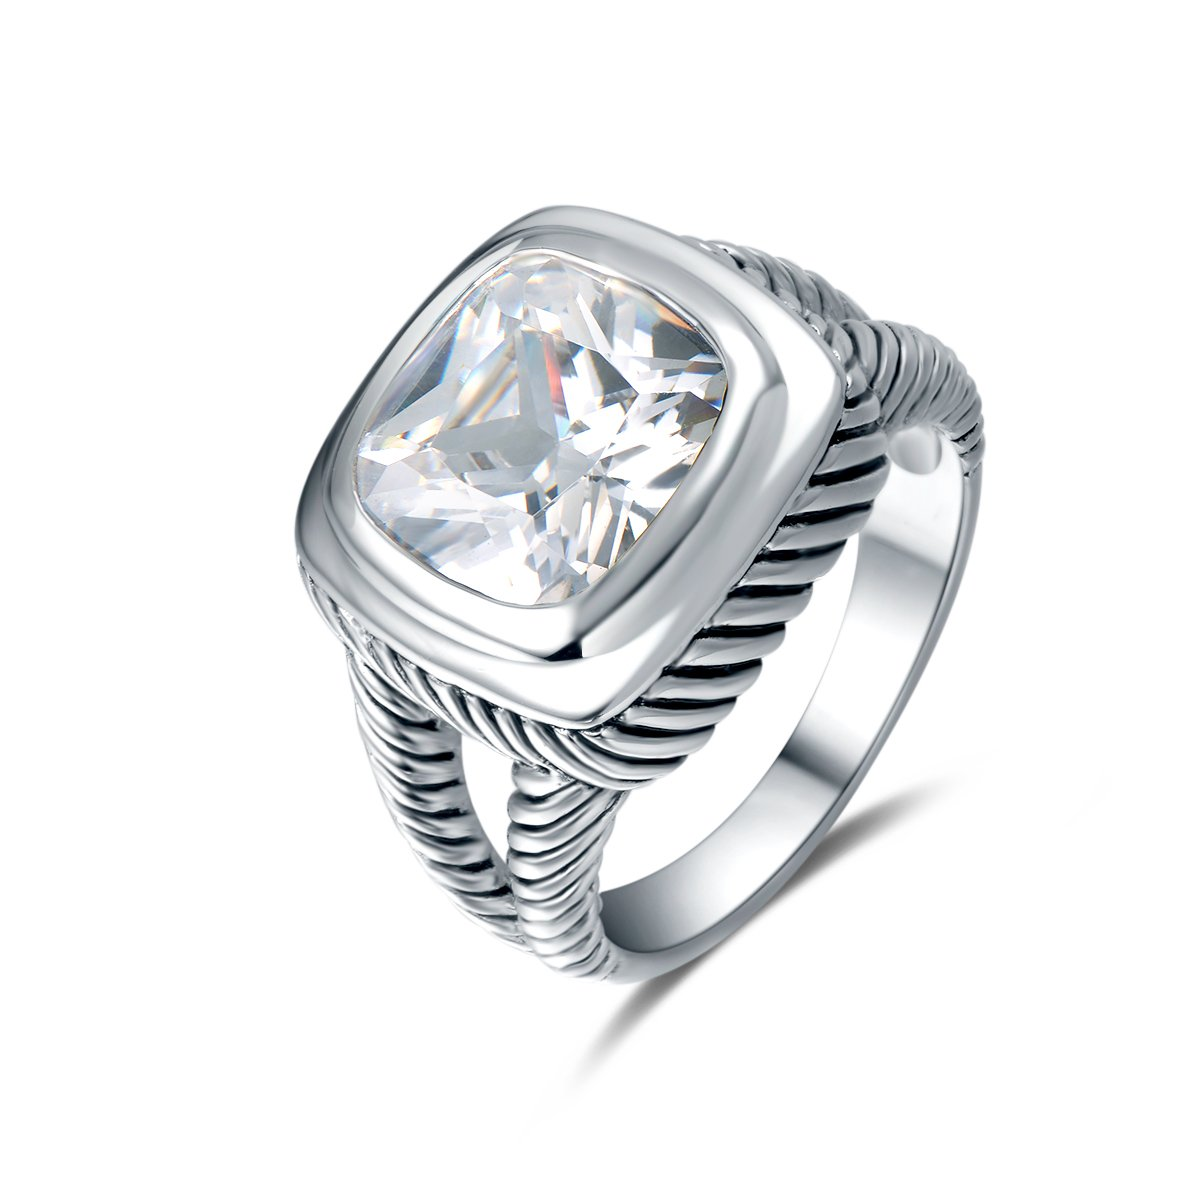 Quiges Vintage Cocktail Inspired 925 Silver Classic David Rope Wire Solitaire Ring with Radiant Crystal CZ 19